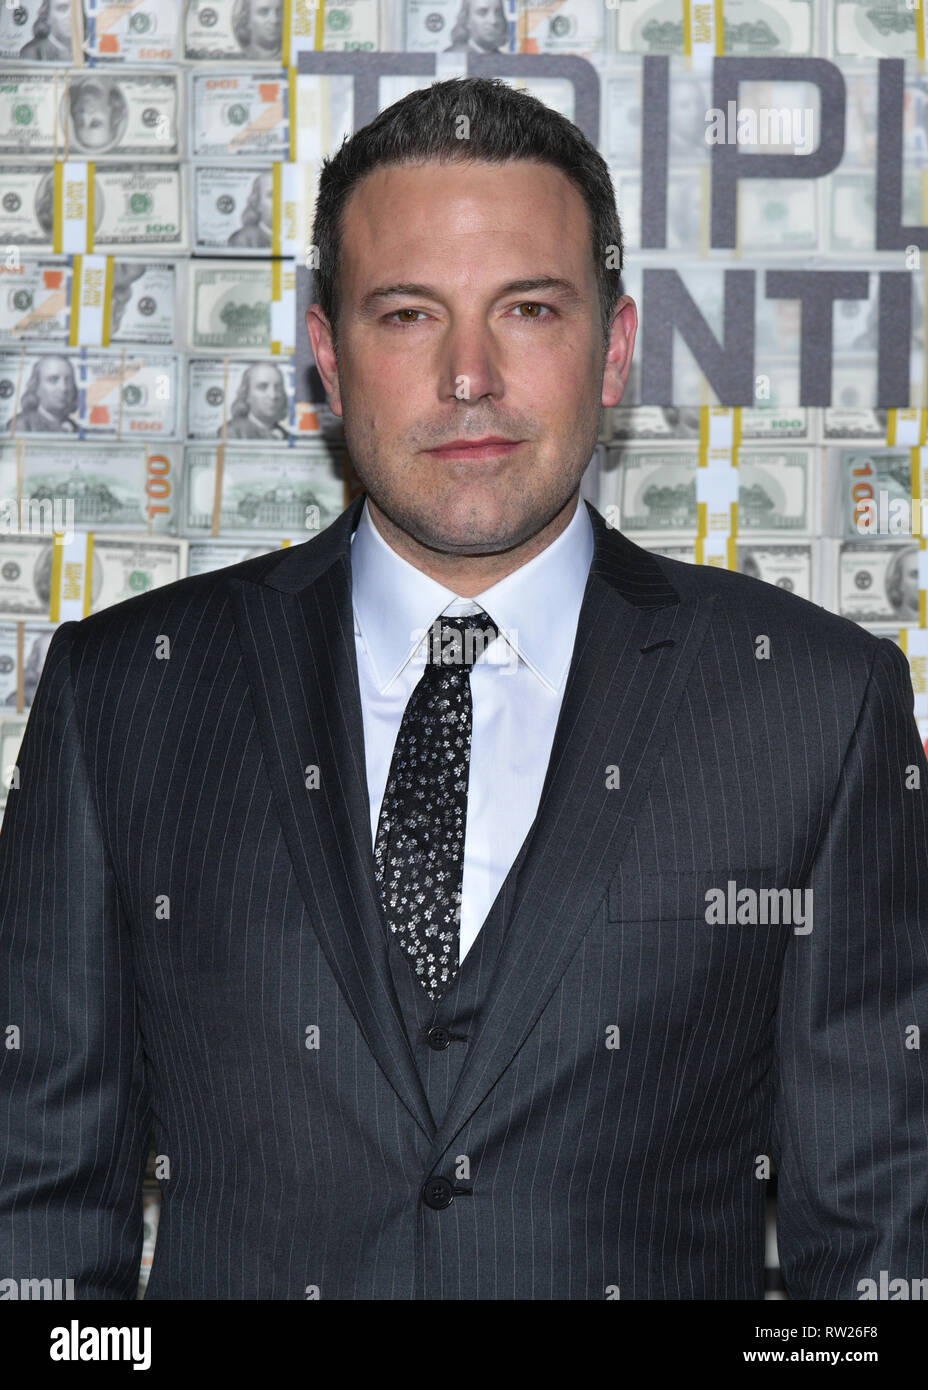 "New York, USA. 3. Mär 2019. Ben Affleck besucht die ""Triple Frontier' Weltpremiere auf Jazz am Lincoln Center am 03 Maerz, 2019 in New York City. Credit: Erik Pendzich/Alamy leben Nachrichten Stockfoto"